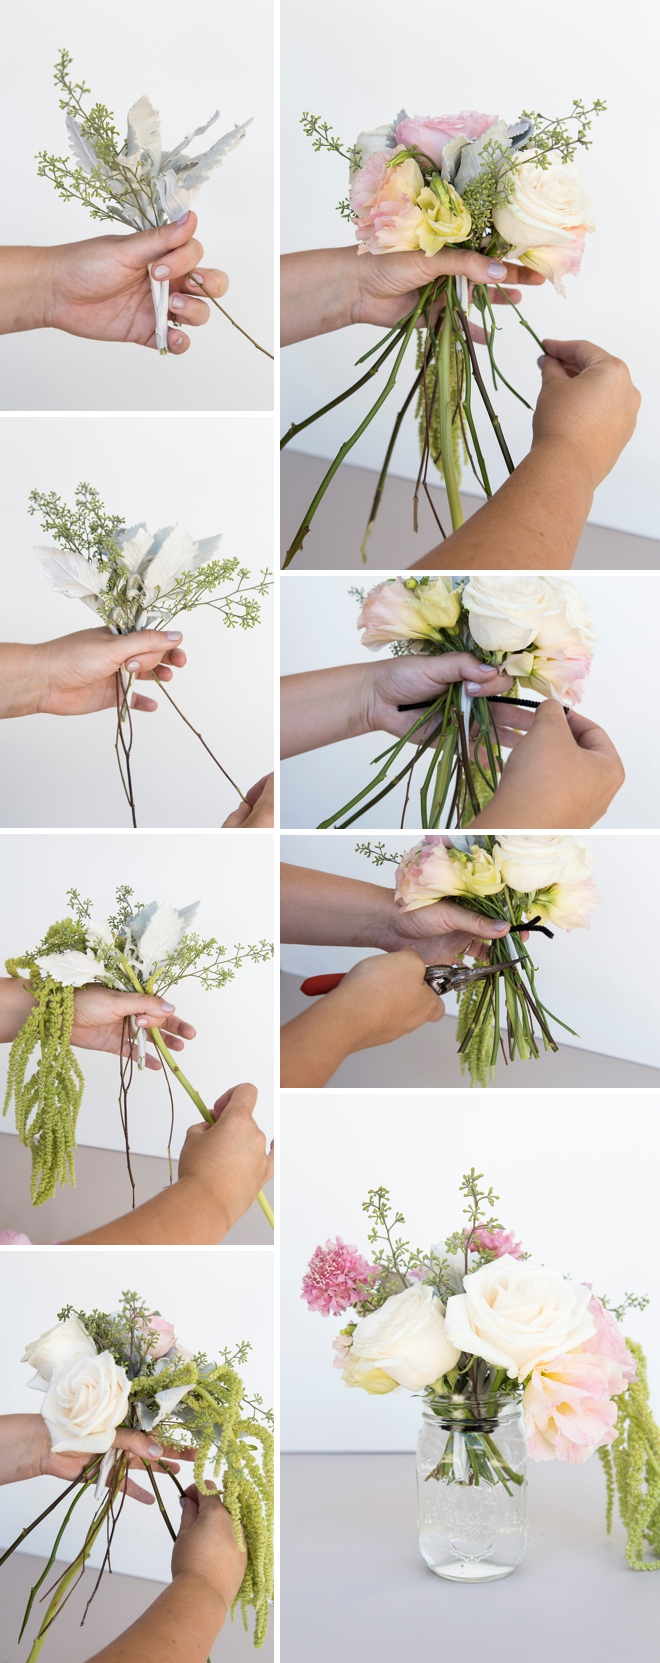 Learn how to arrange your own centerpiece bouquets!